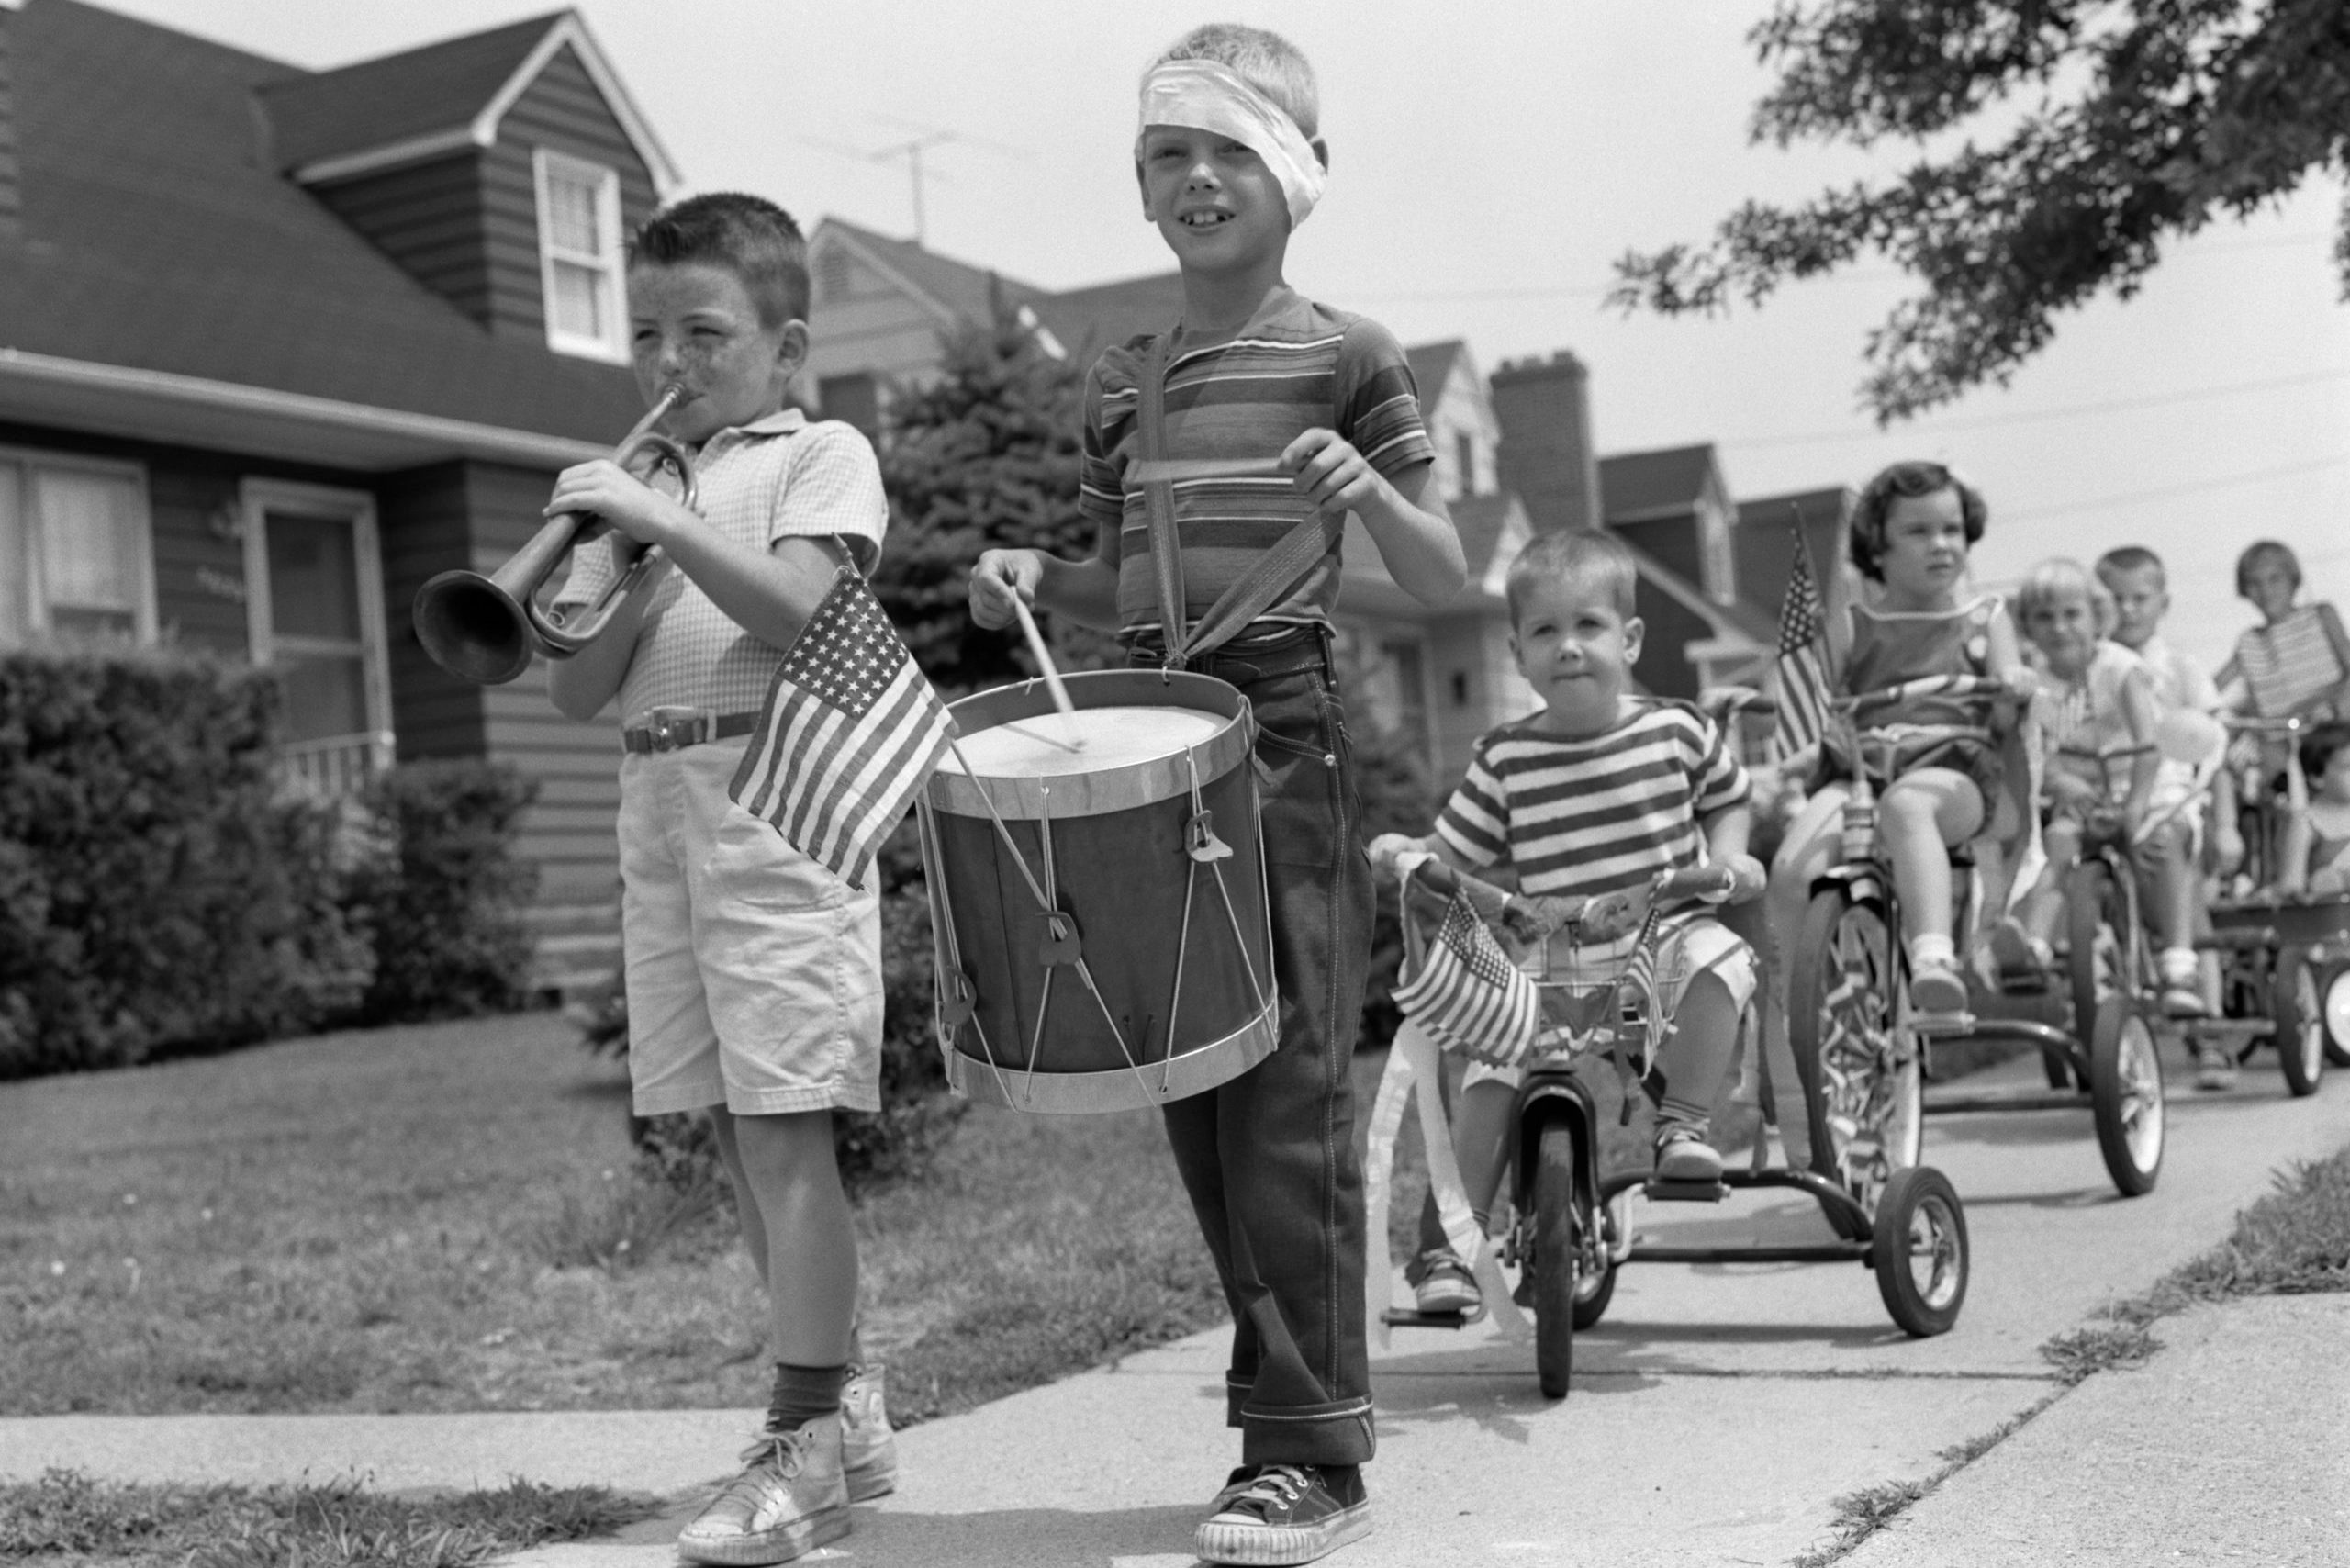 1960s CHILDREN IN FOURTH OF JULY PARADE RIDING TRICYCLES ON SIDEWALK PLAYING DRUM AND TRUMPET MUSIC